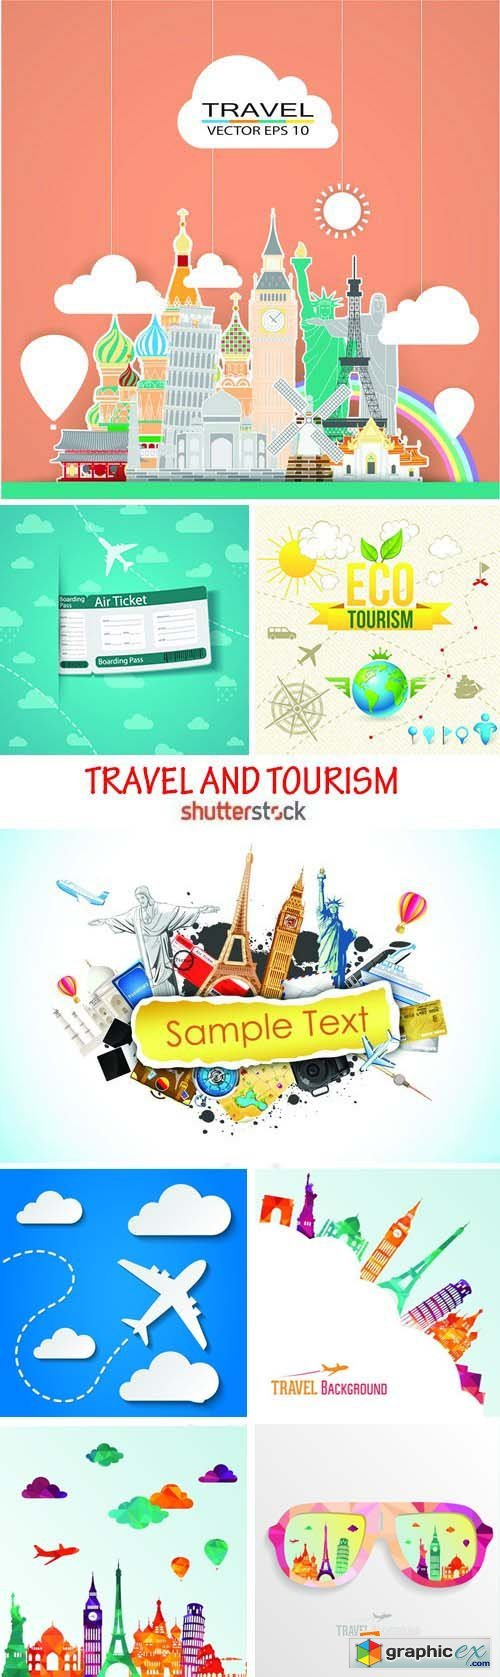 Amazing SS - Travel and tourism 2, 25xEPS